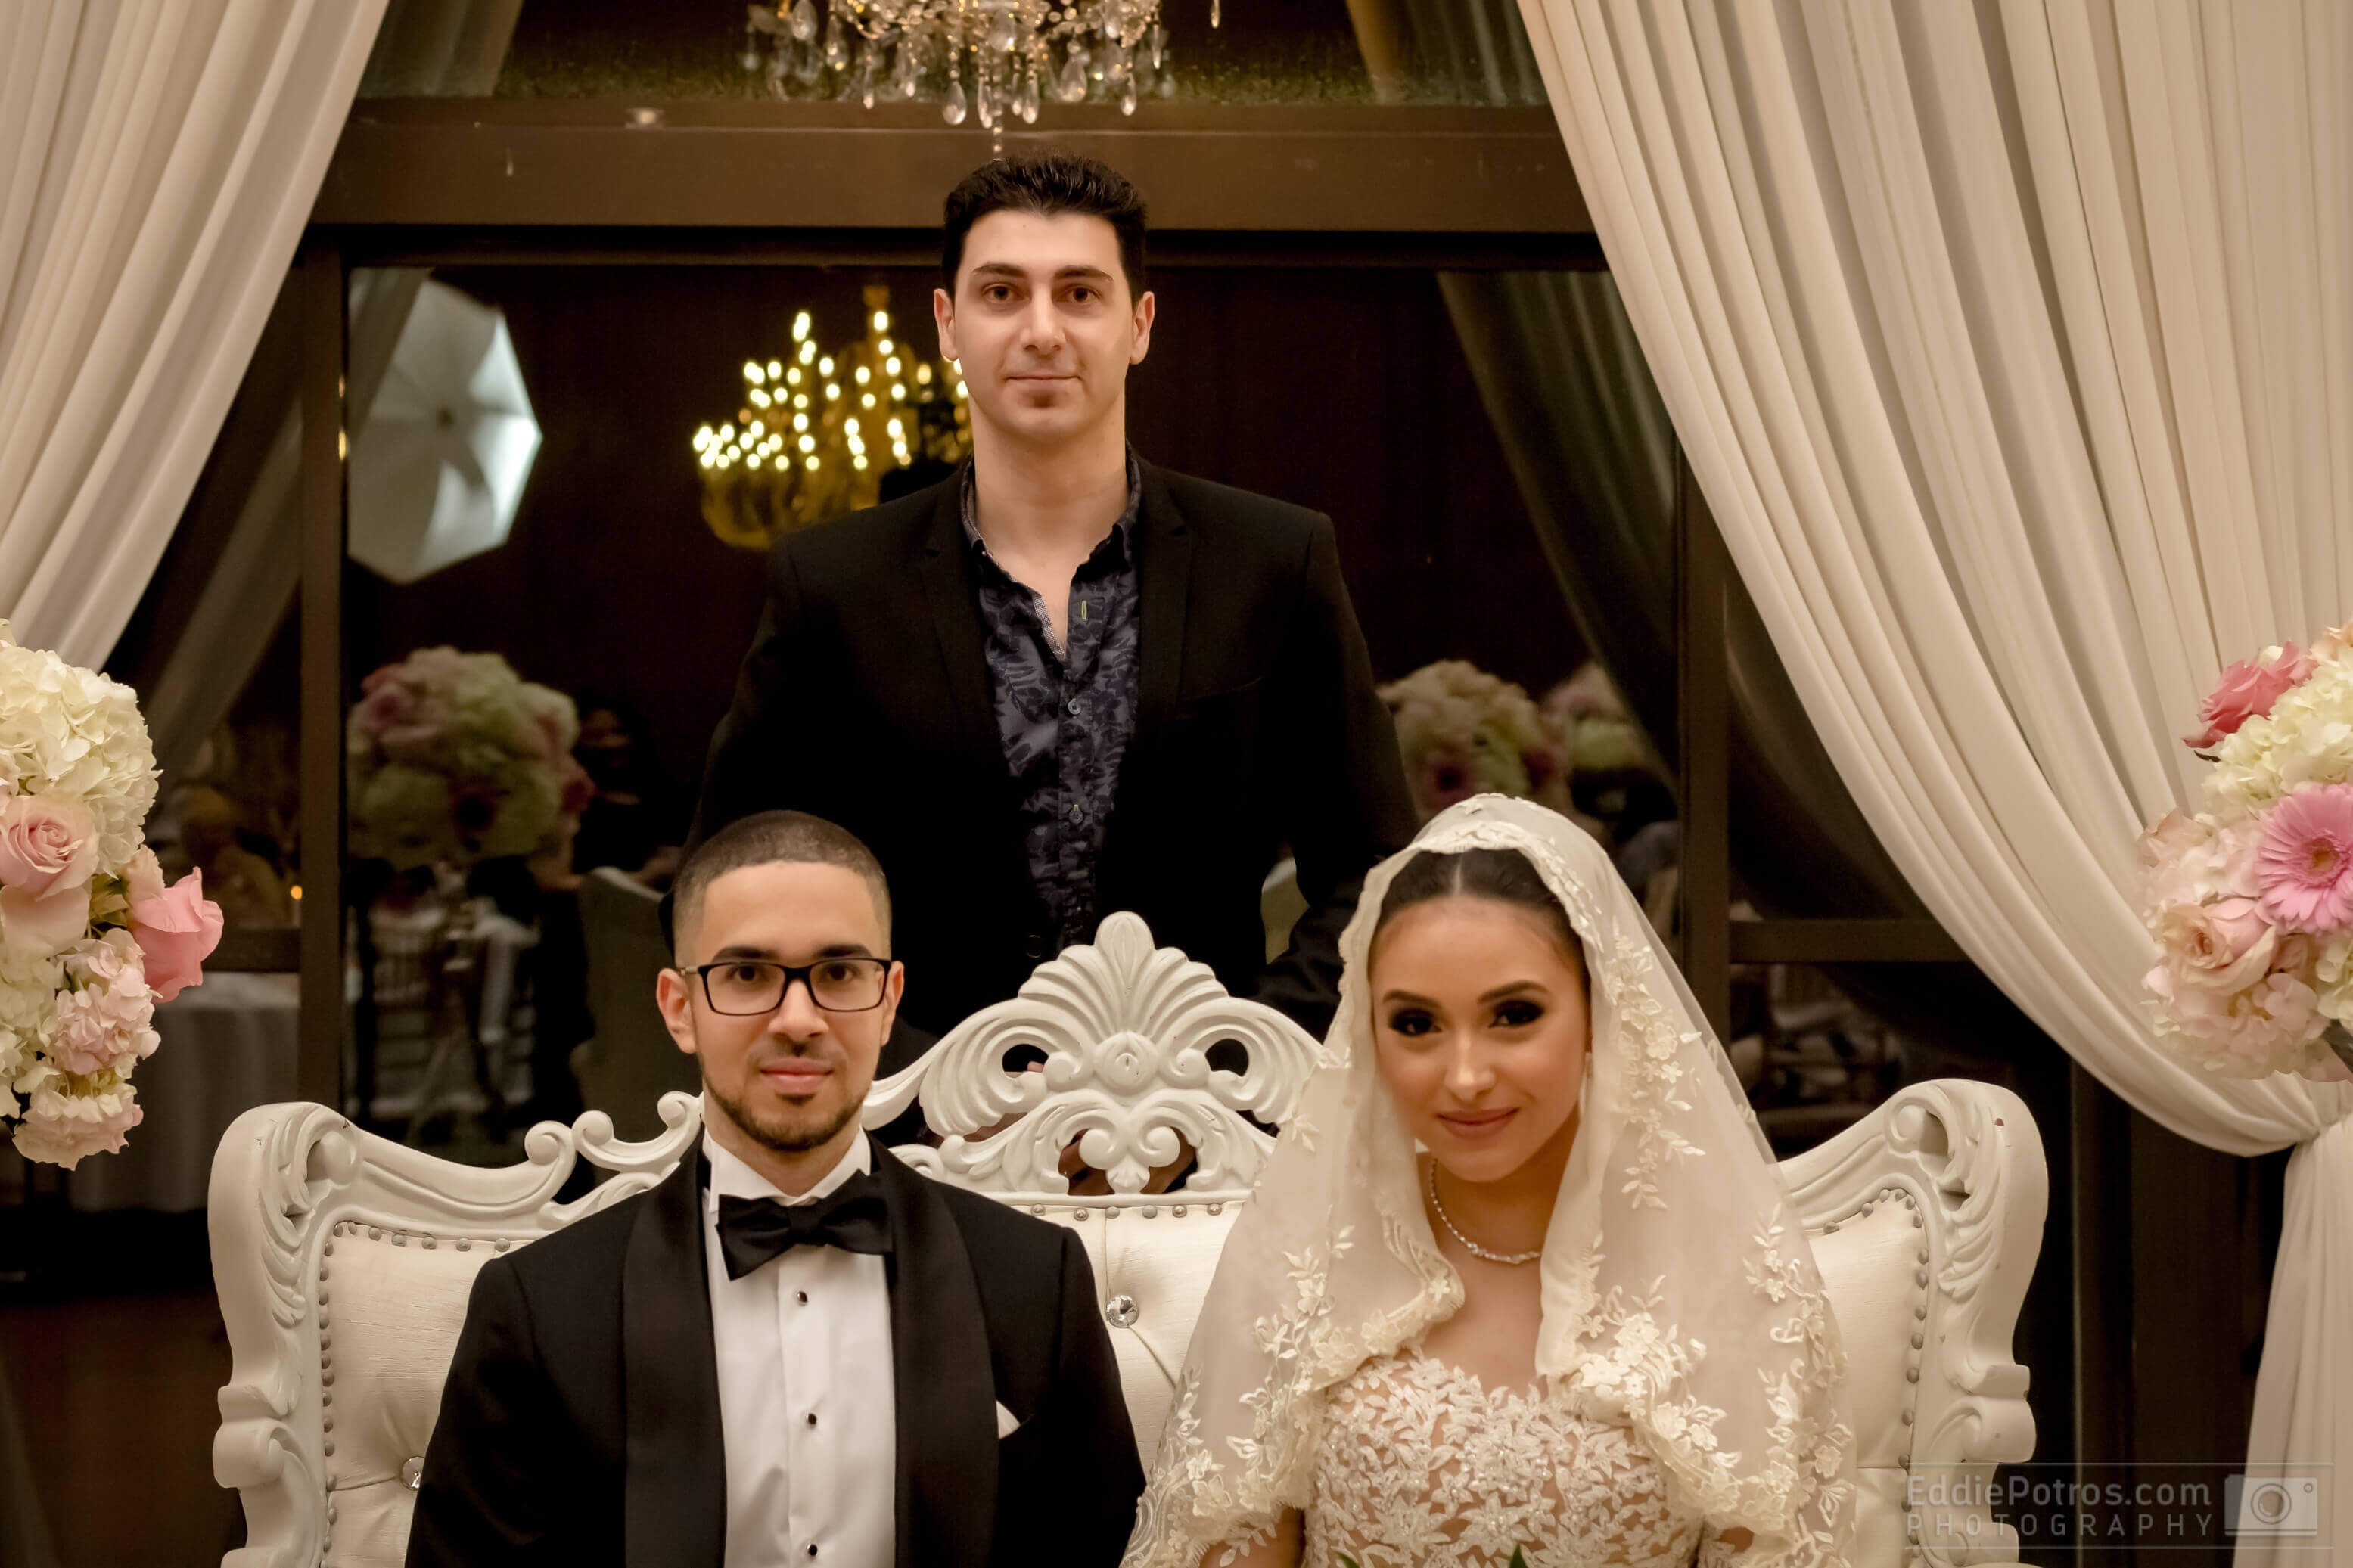 Congratulations Amr & Alya on your Wedding